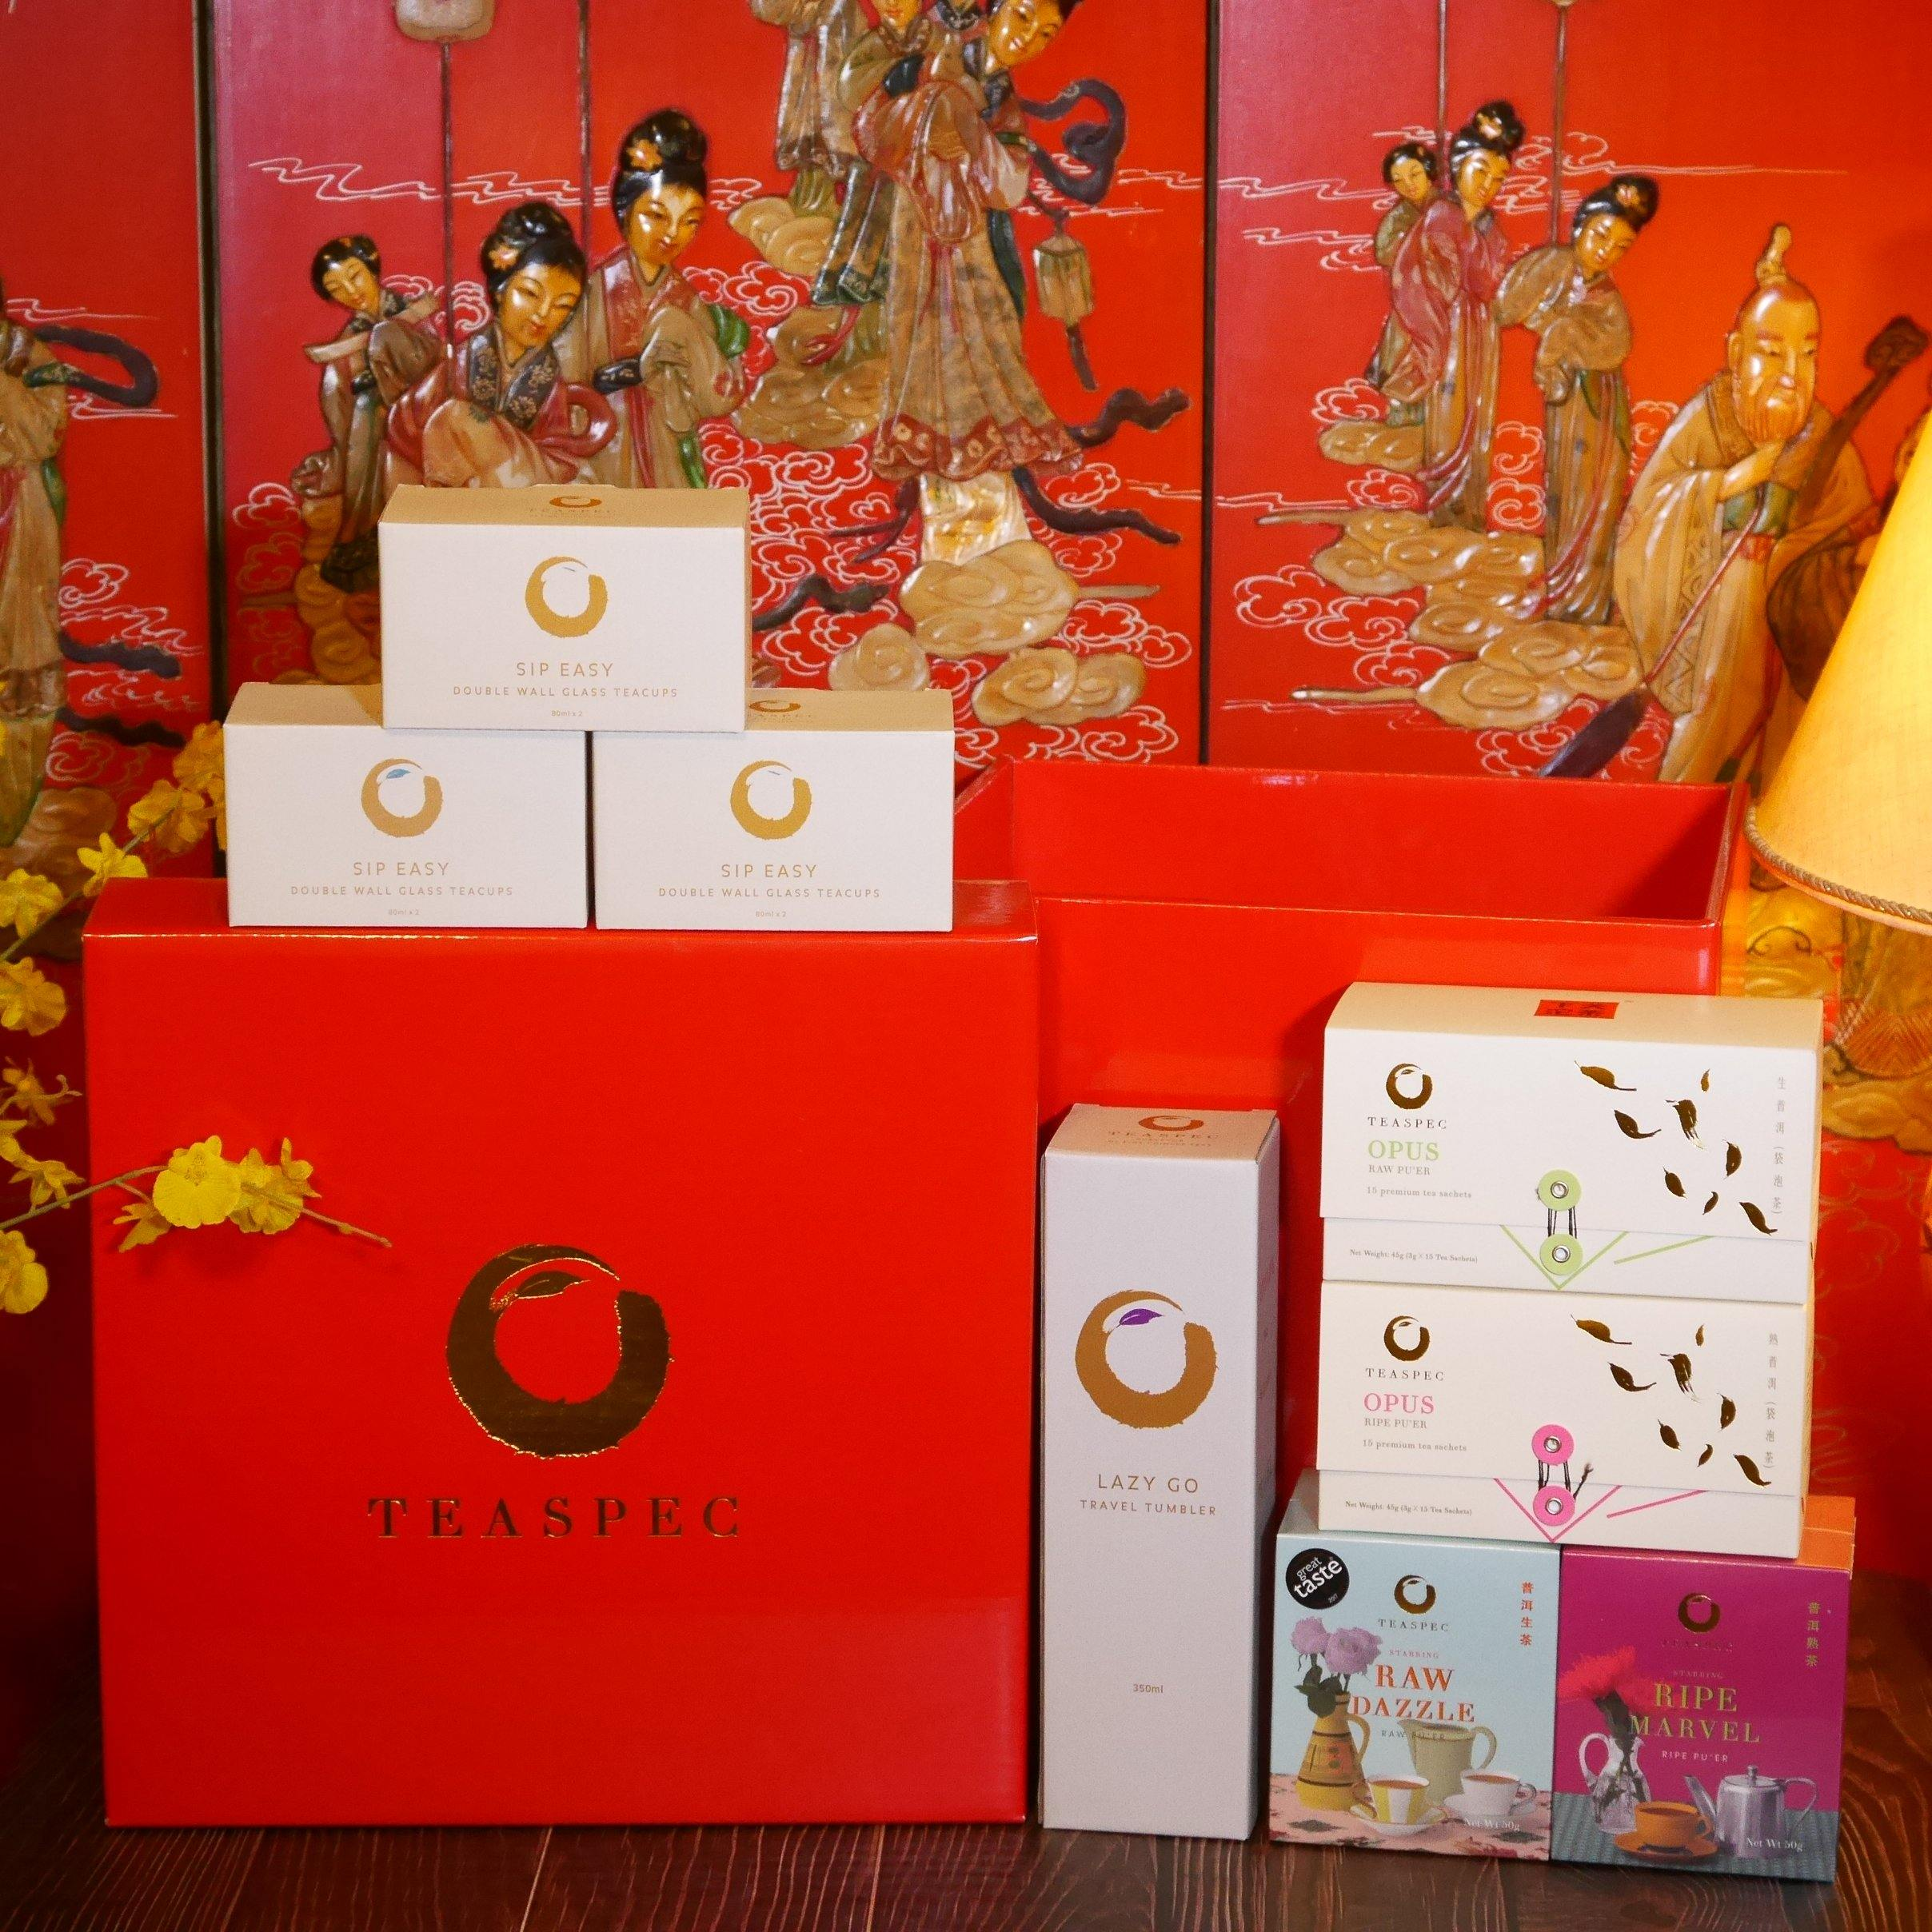 TEASPEC Grand Hamper